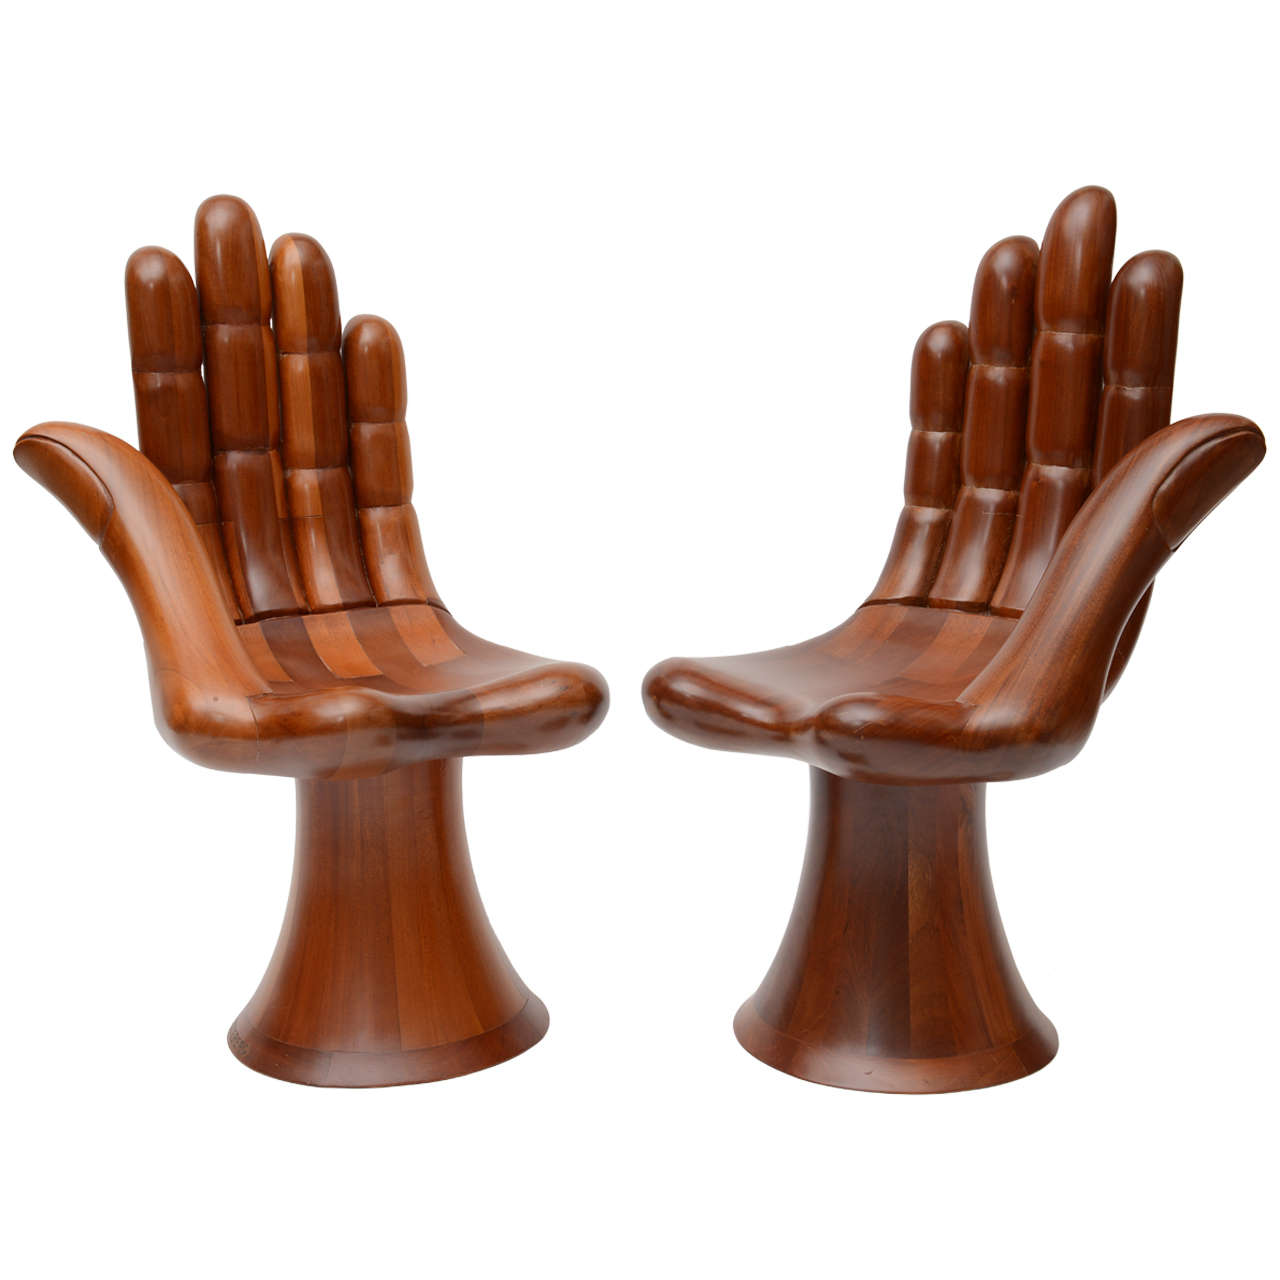 Hand Chairs Pedro Friedeberg Right And Left Hand Chairs At 1stdibs